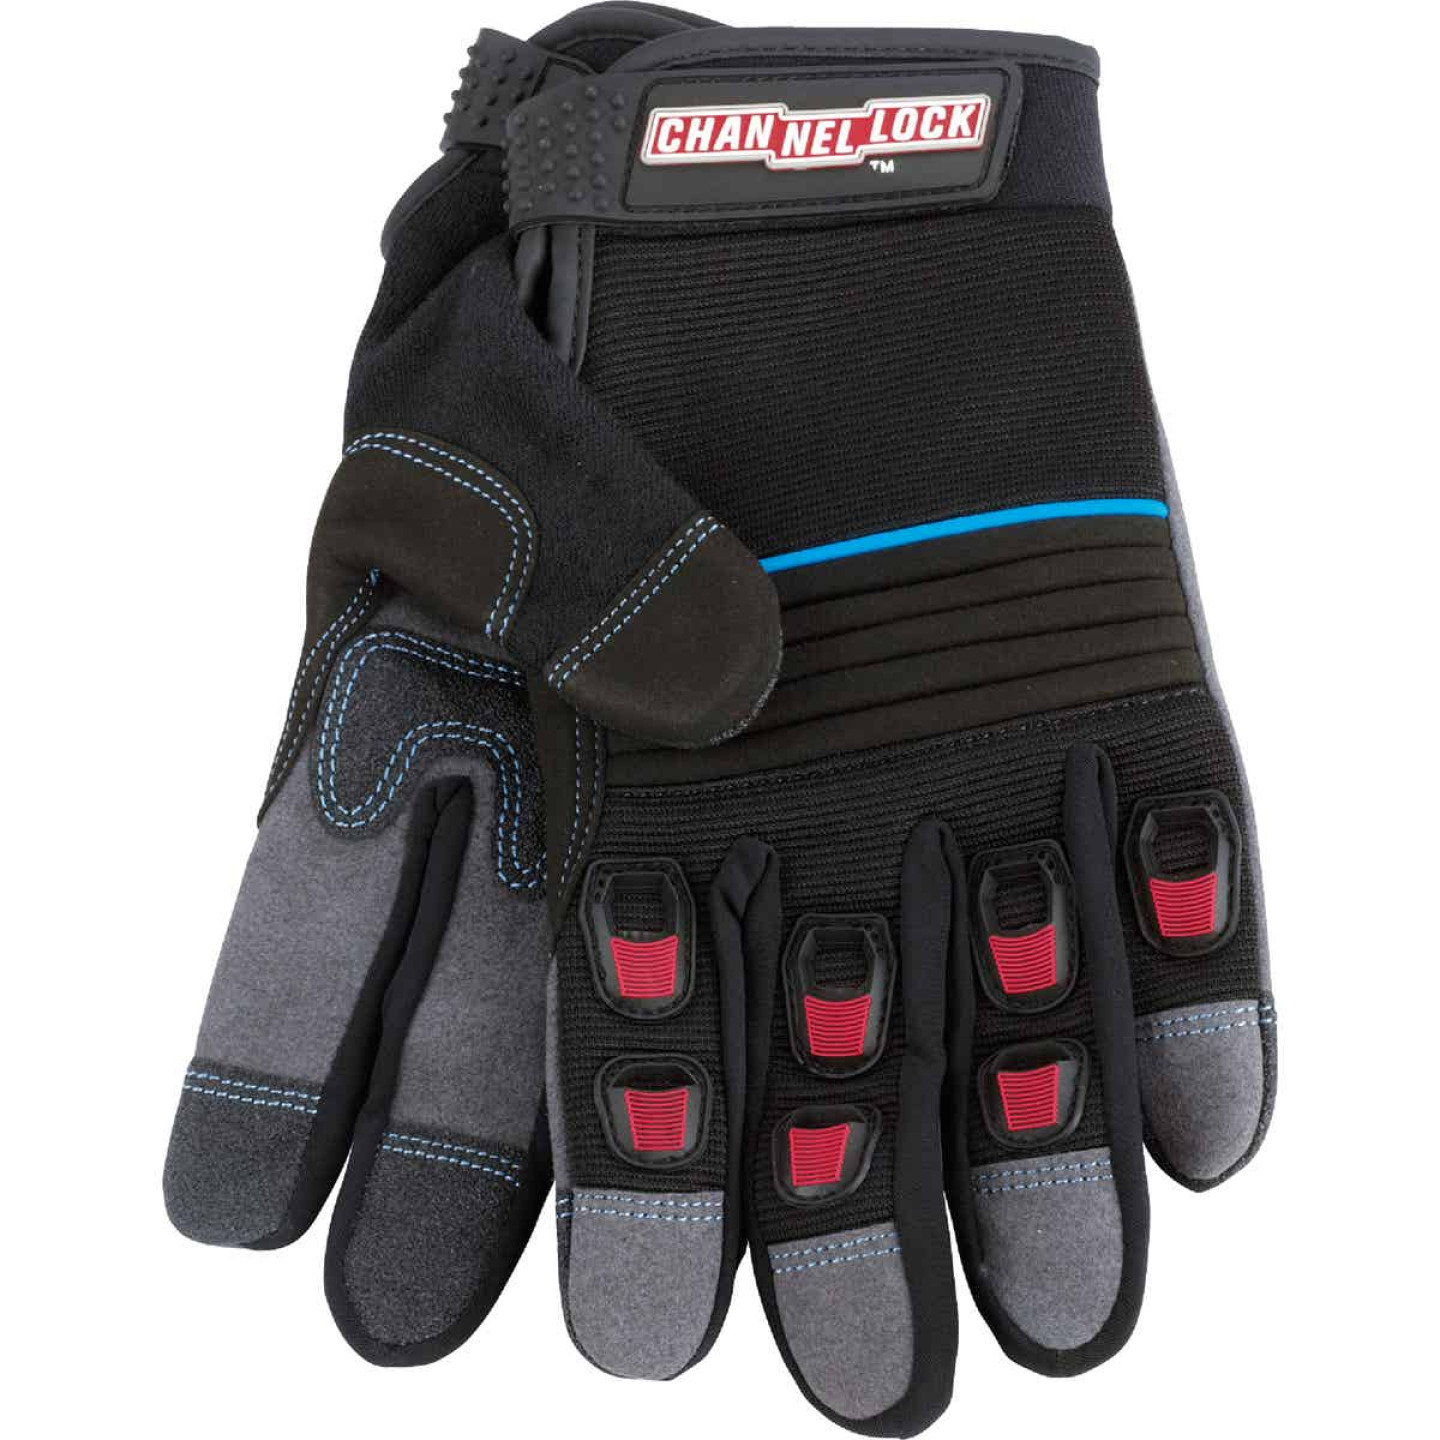 Channellock Men's Large Synthetic Leather Heavy-Duty High Performance Glove Image 3